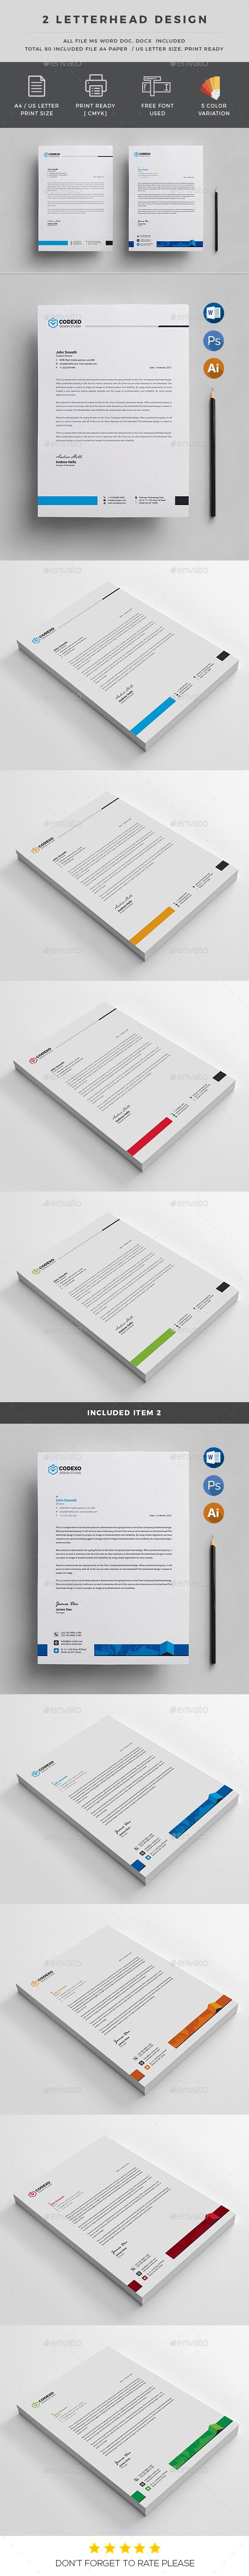 #Letterhead Template - Stationery Print Templates Download here:    https://graphicriver.net/item/letterhead-template/19541957?ref=suz_562geid